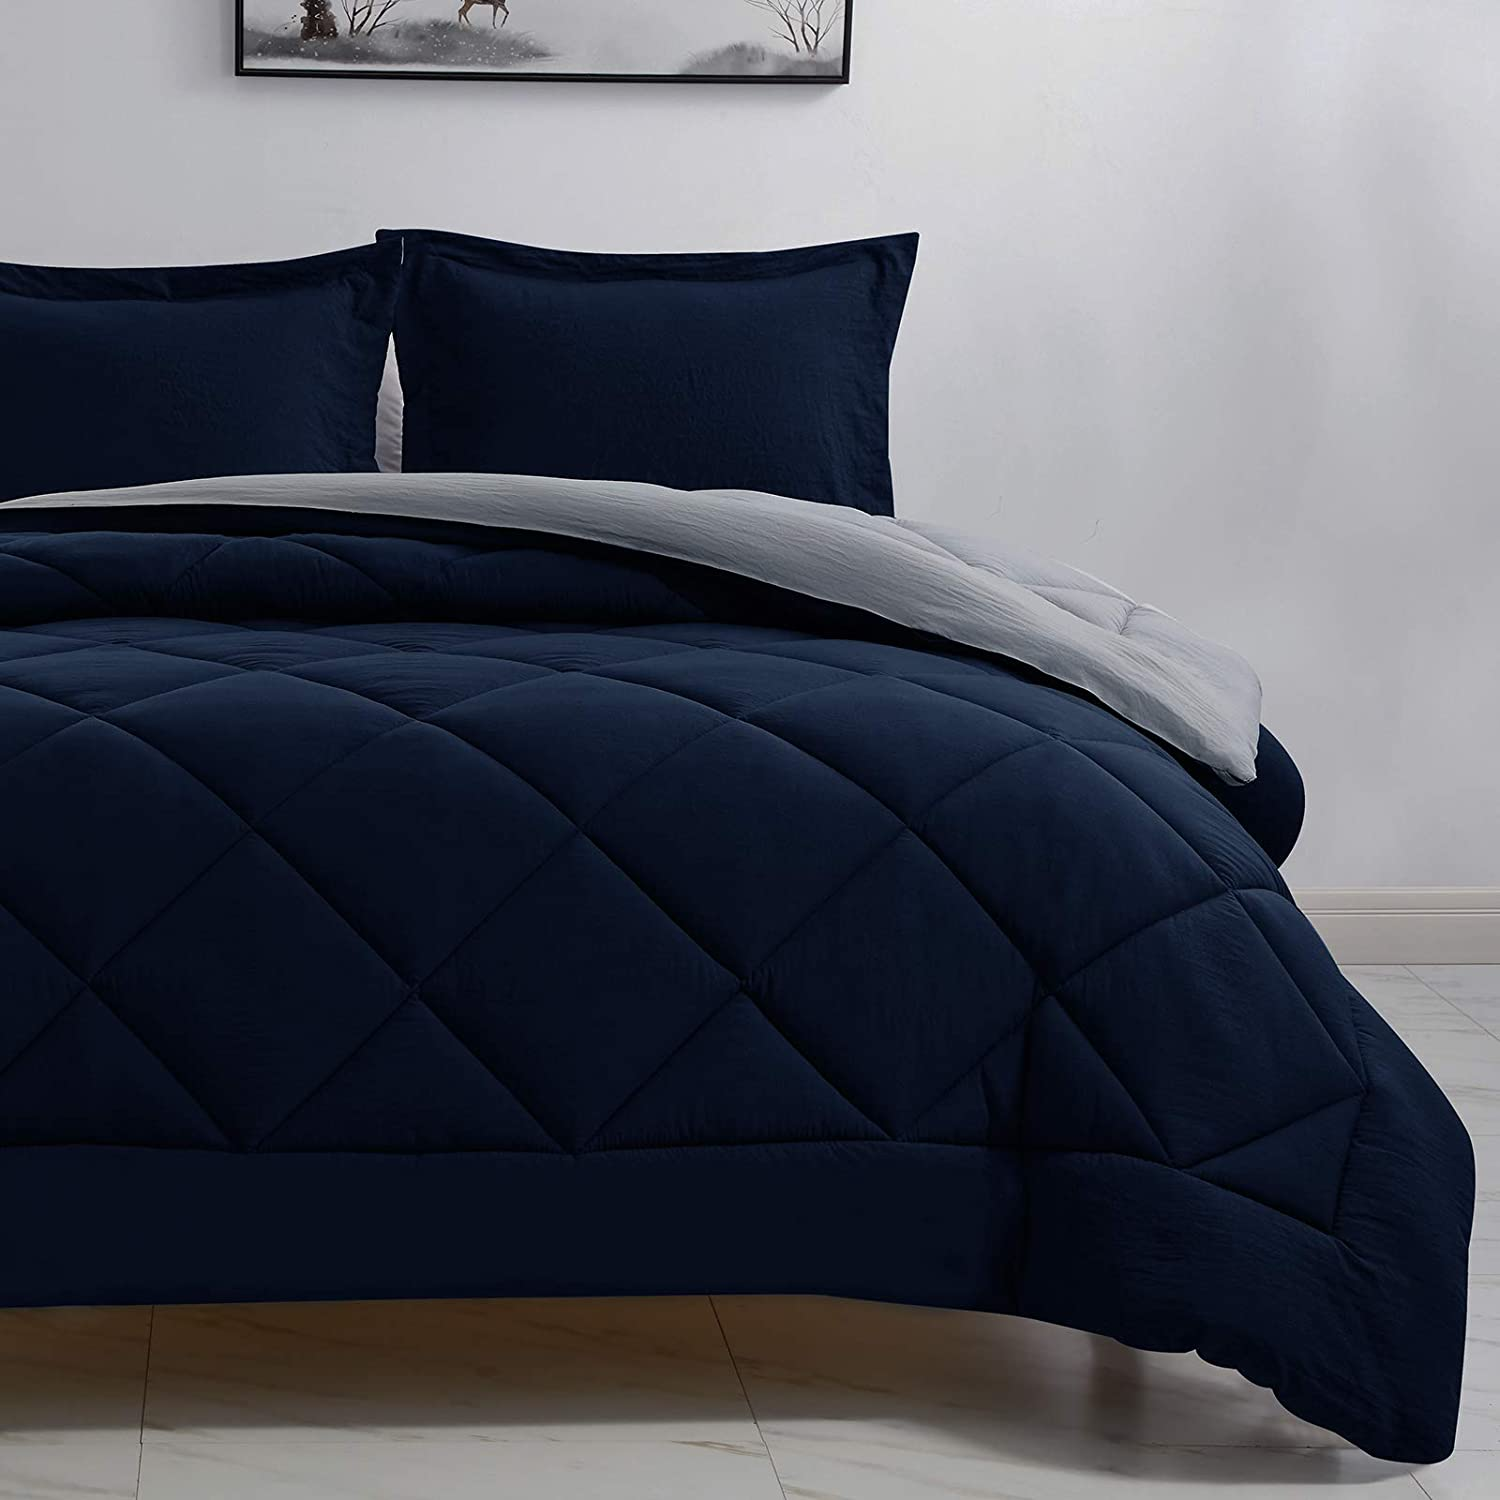 Today's only CozyLux Queen Oklahoma City Mall Full Reversible Comforter Li Set 3-Piece Blue Navy